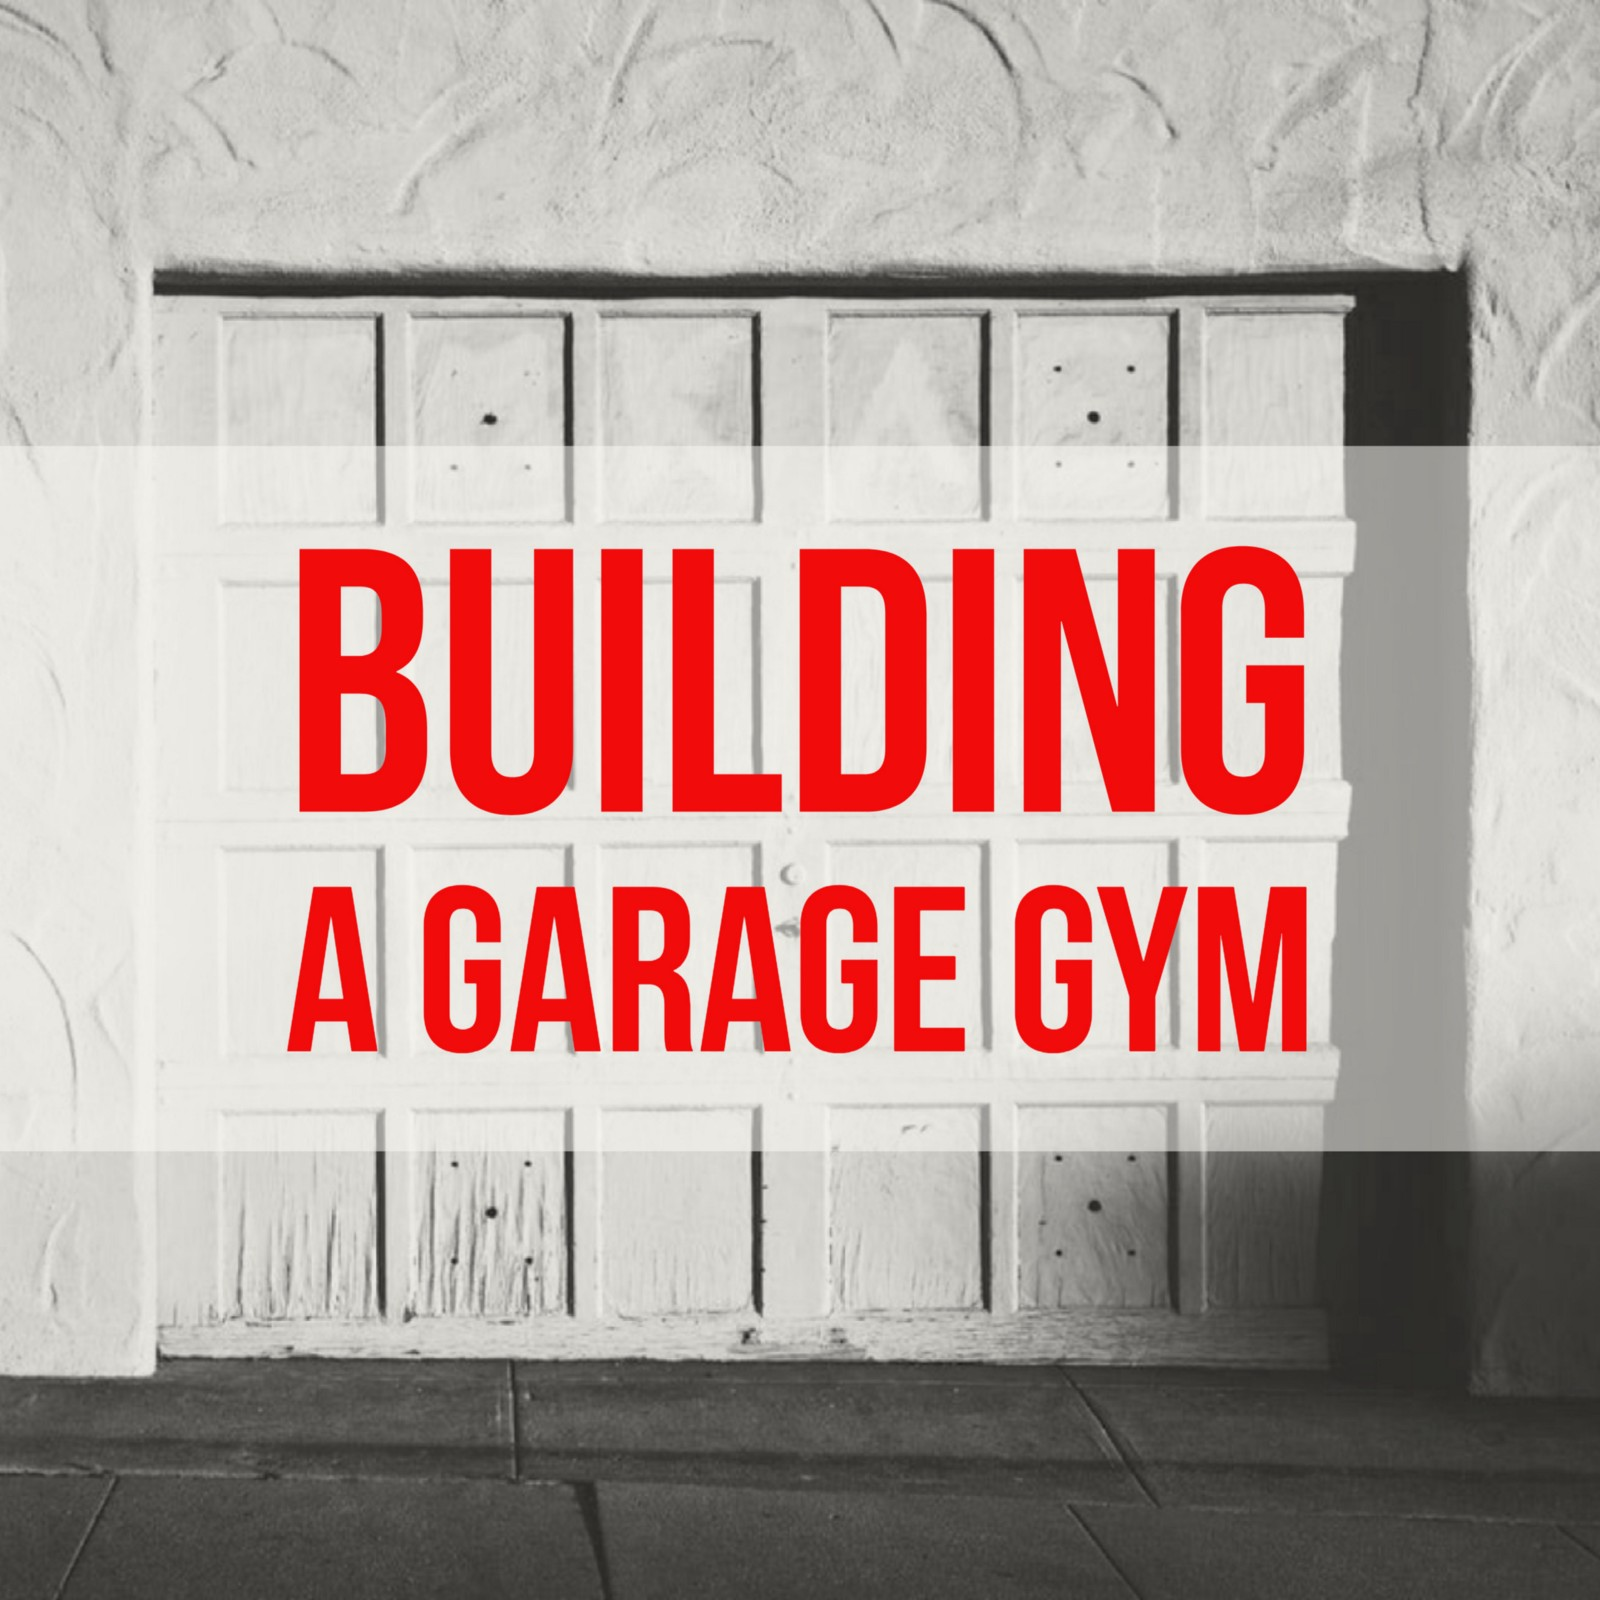 Garage Gym With Car Building A Garage Gym Max Fortitude Fitness Medium